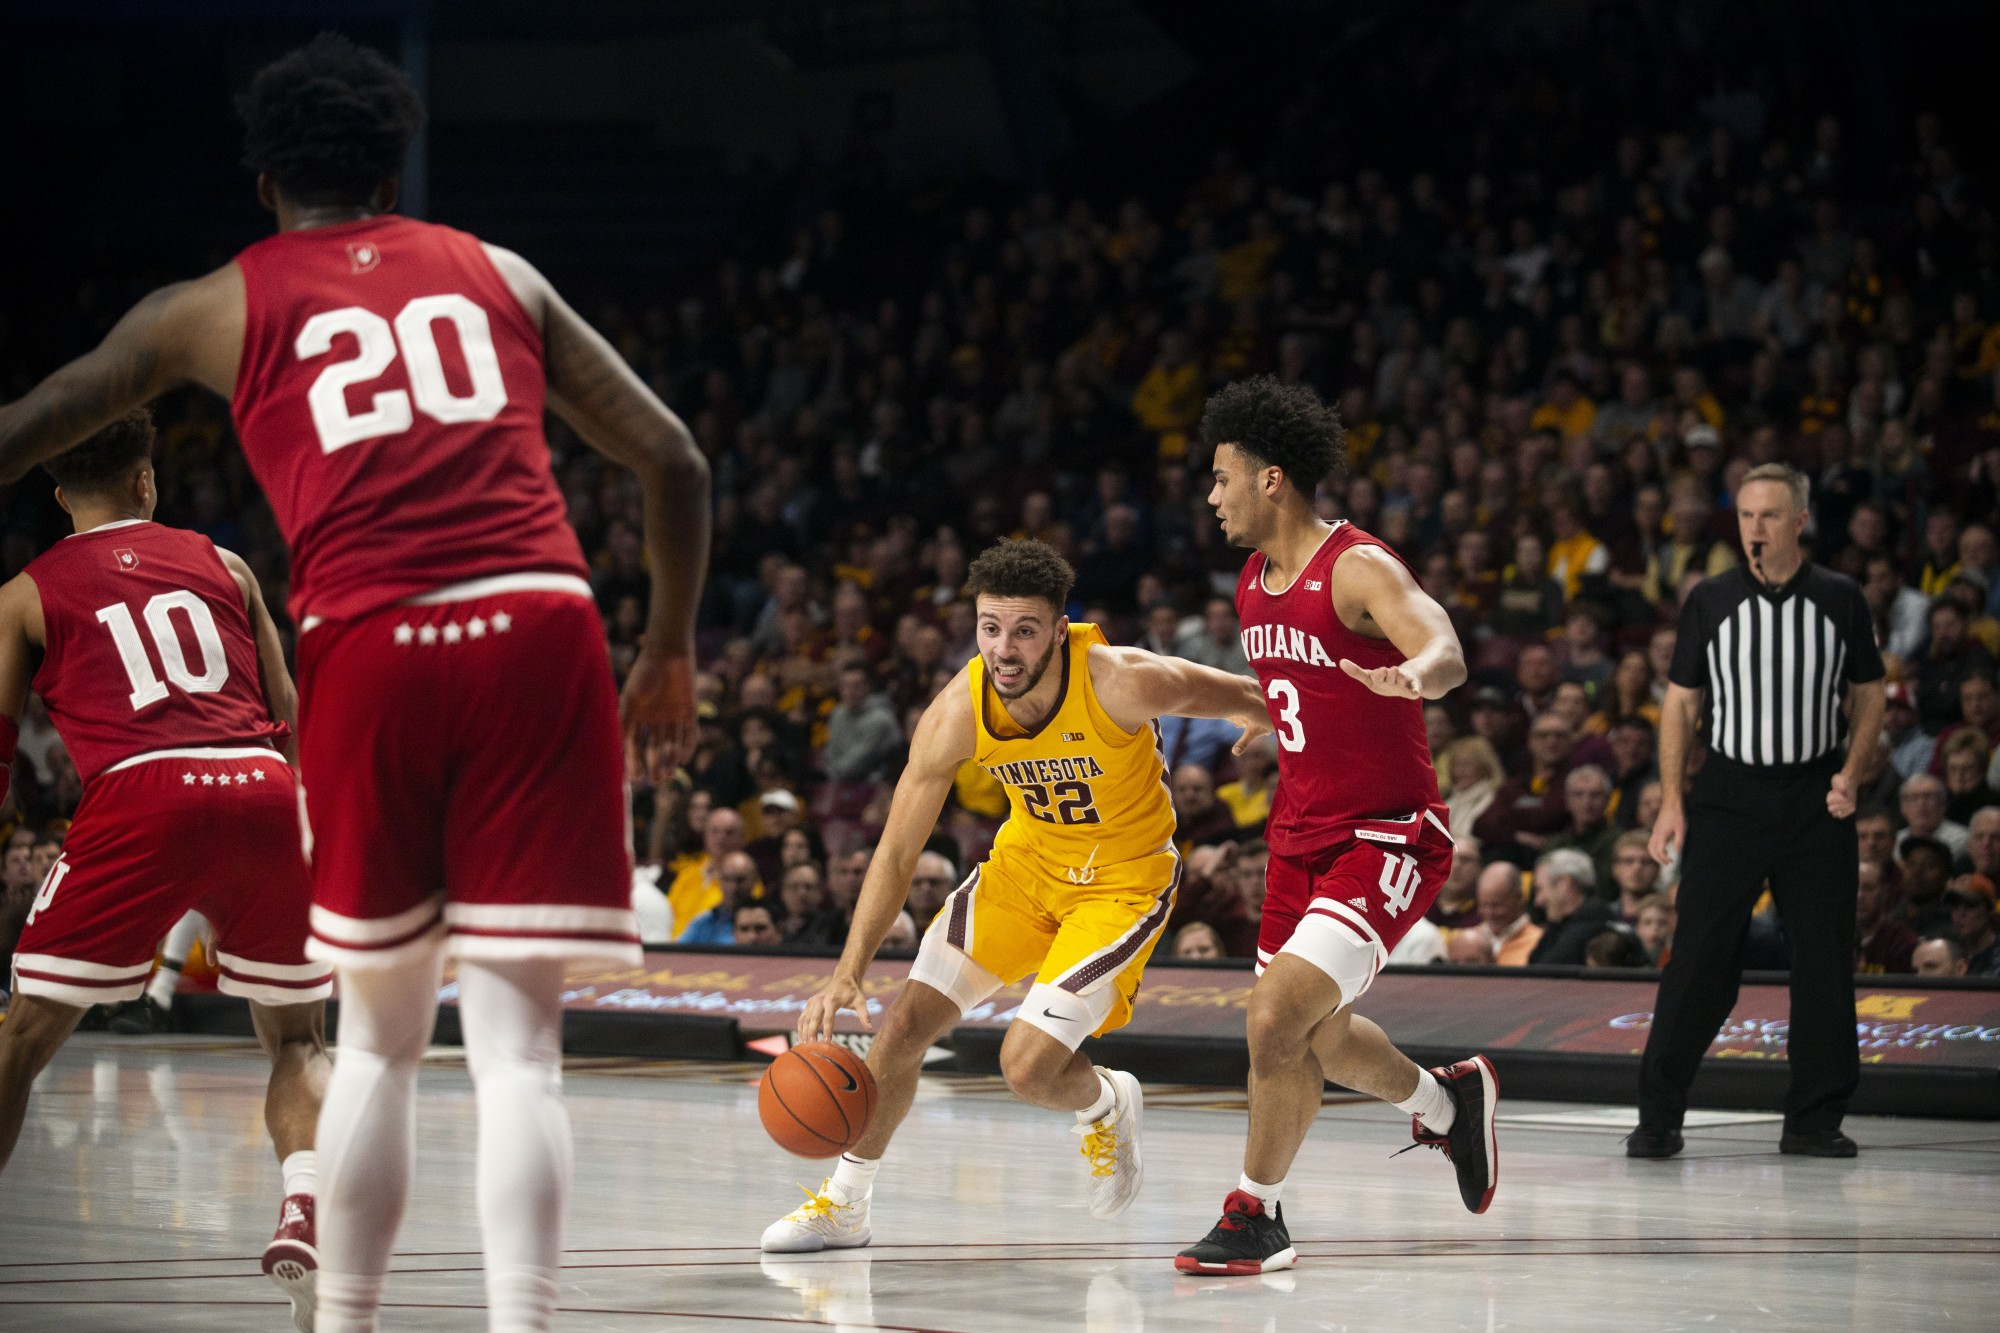 Guard Gabe Kalscheur drives the ball through the defenders at Williams Arena on Wednesday, Feb. 19.